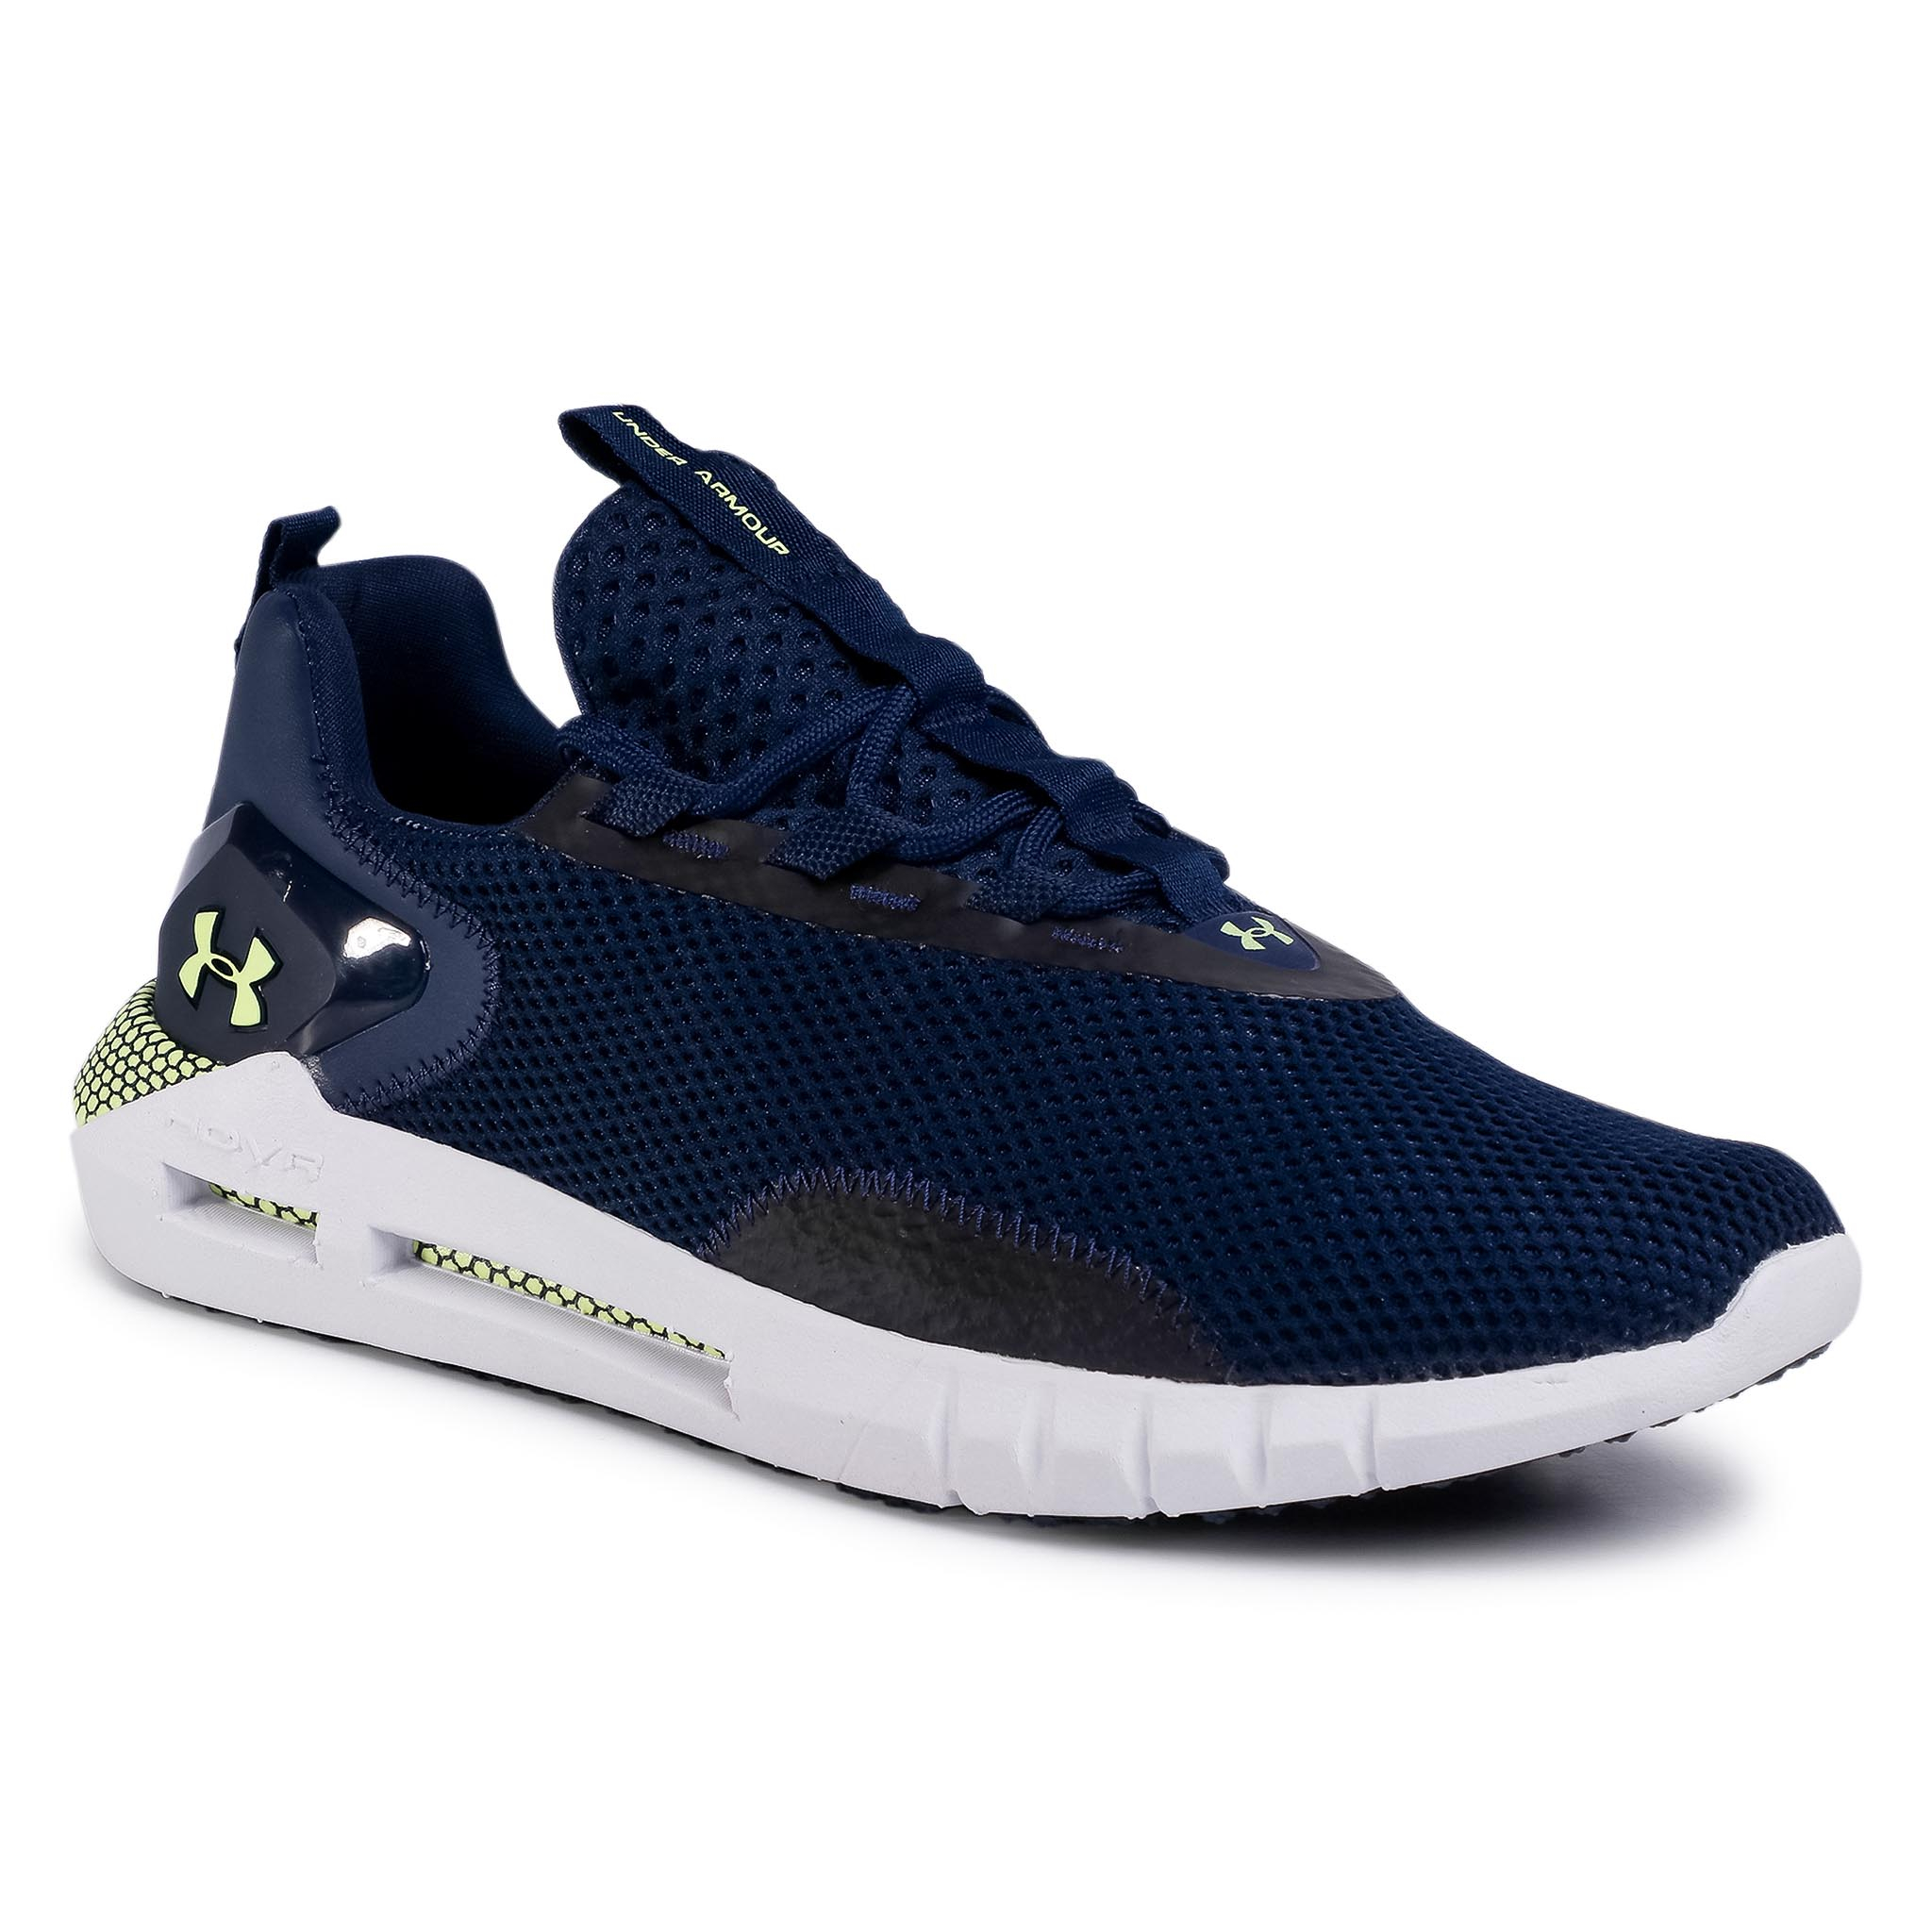 Pantofi UNDER ARMOUR - Ua Hovr Strt 3022580-400 Nvy